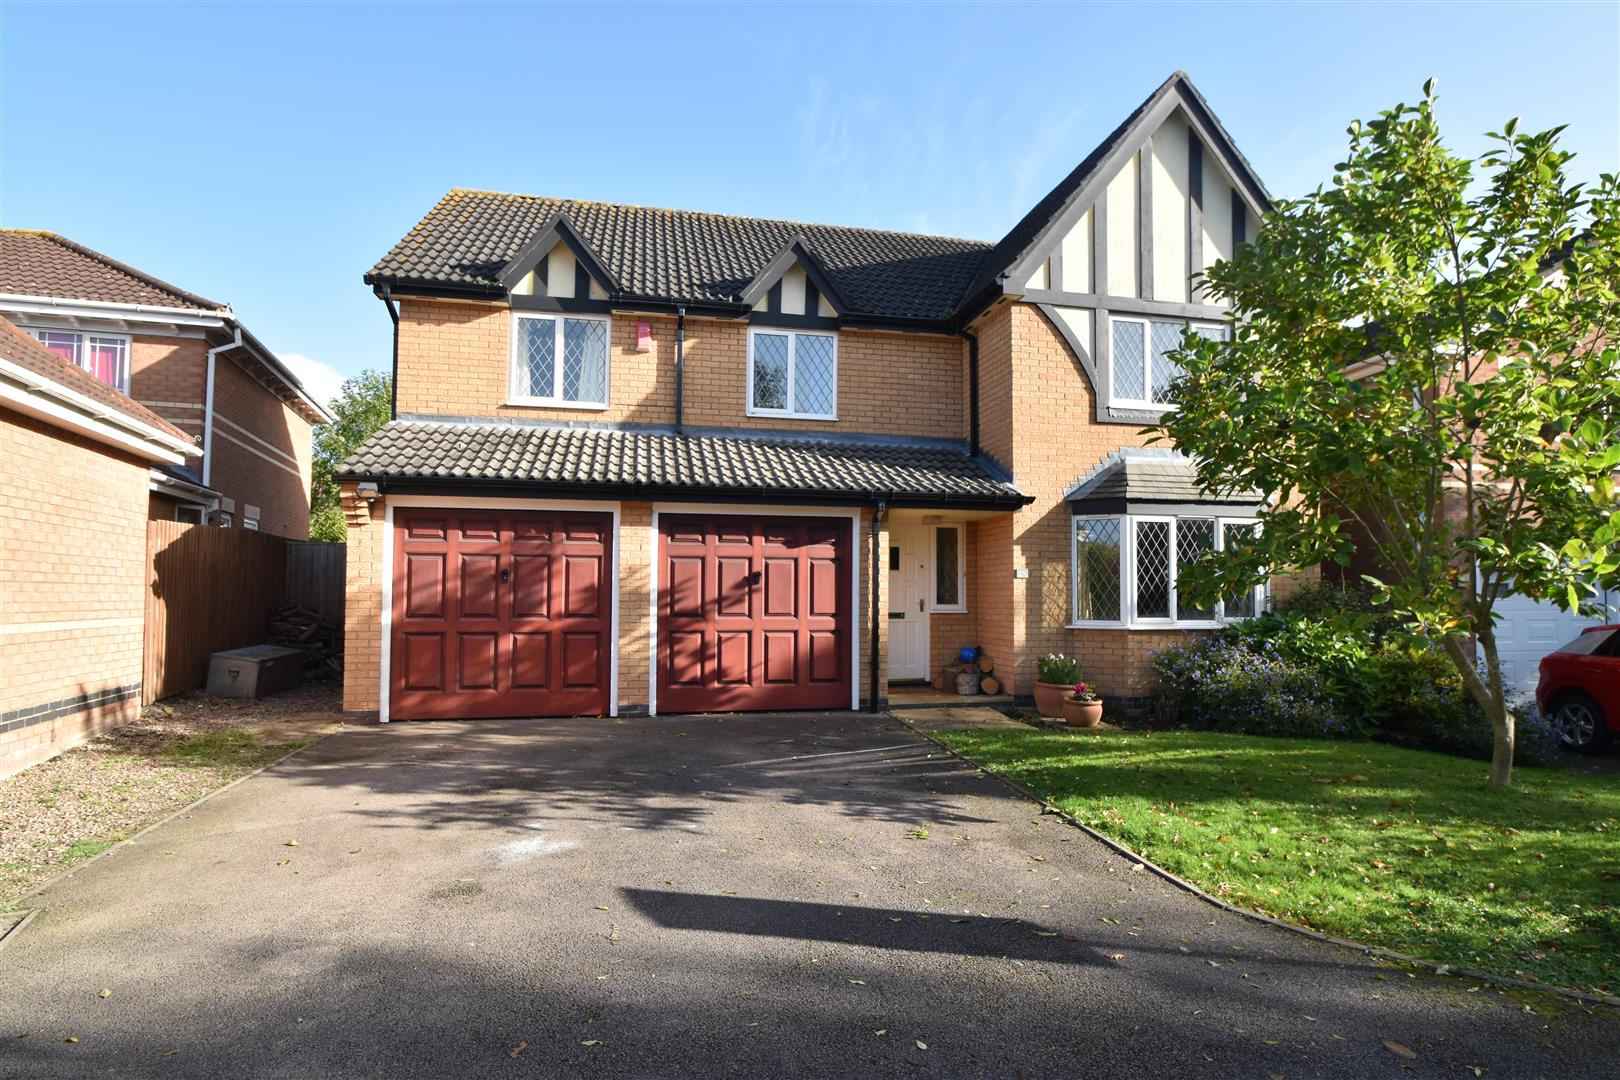 5 Bedrooms Detached House for sale in Charles Dickens Close, Droitwich Spa